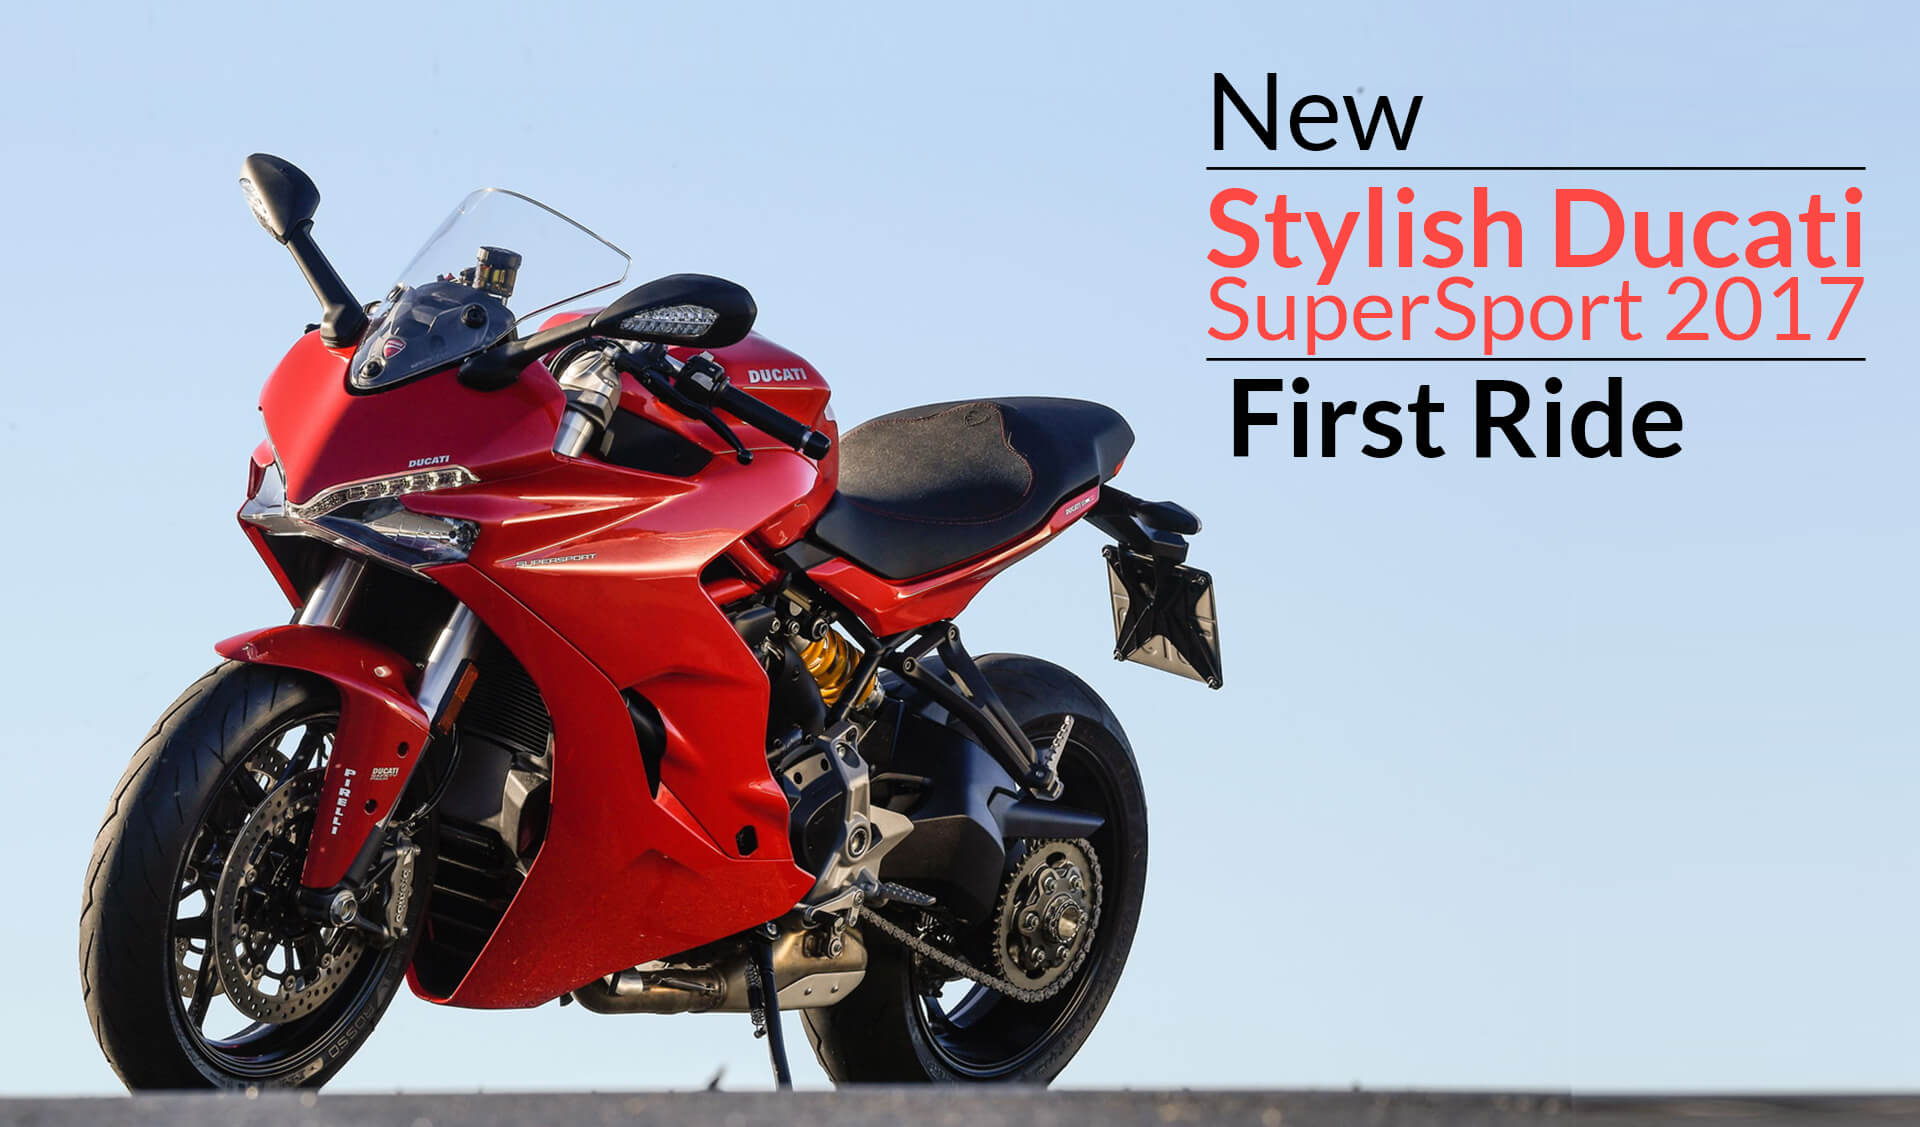 New Stylish Ducati SuperSport 2017 First Ride